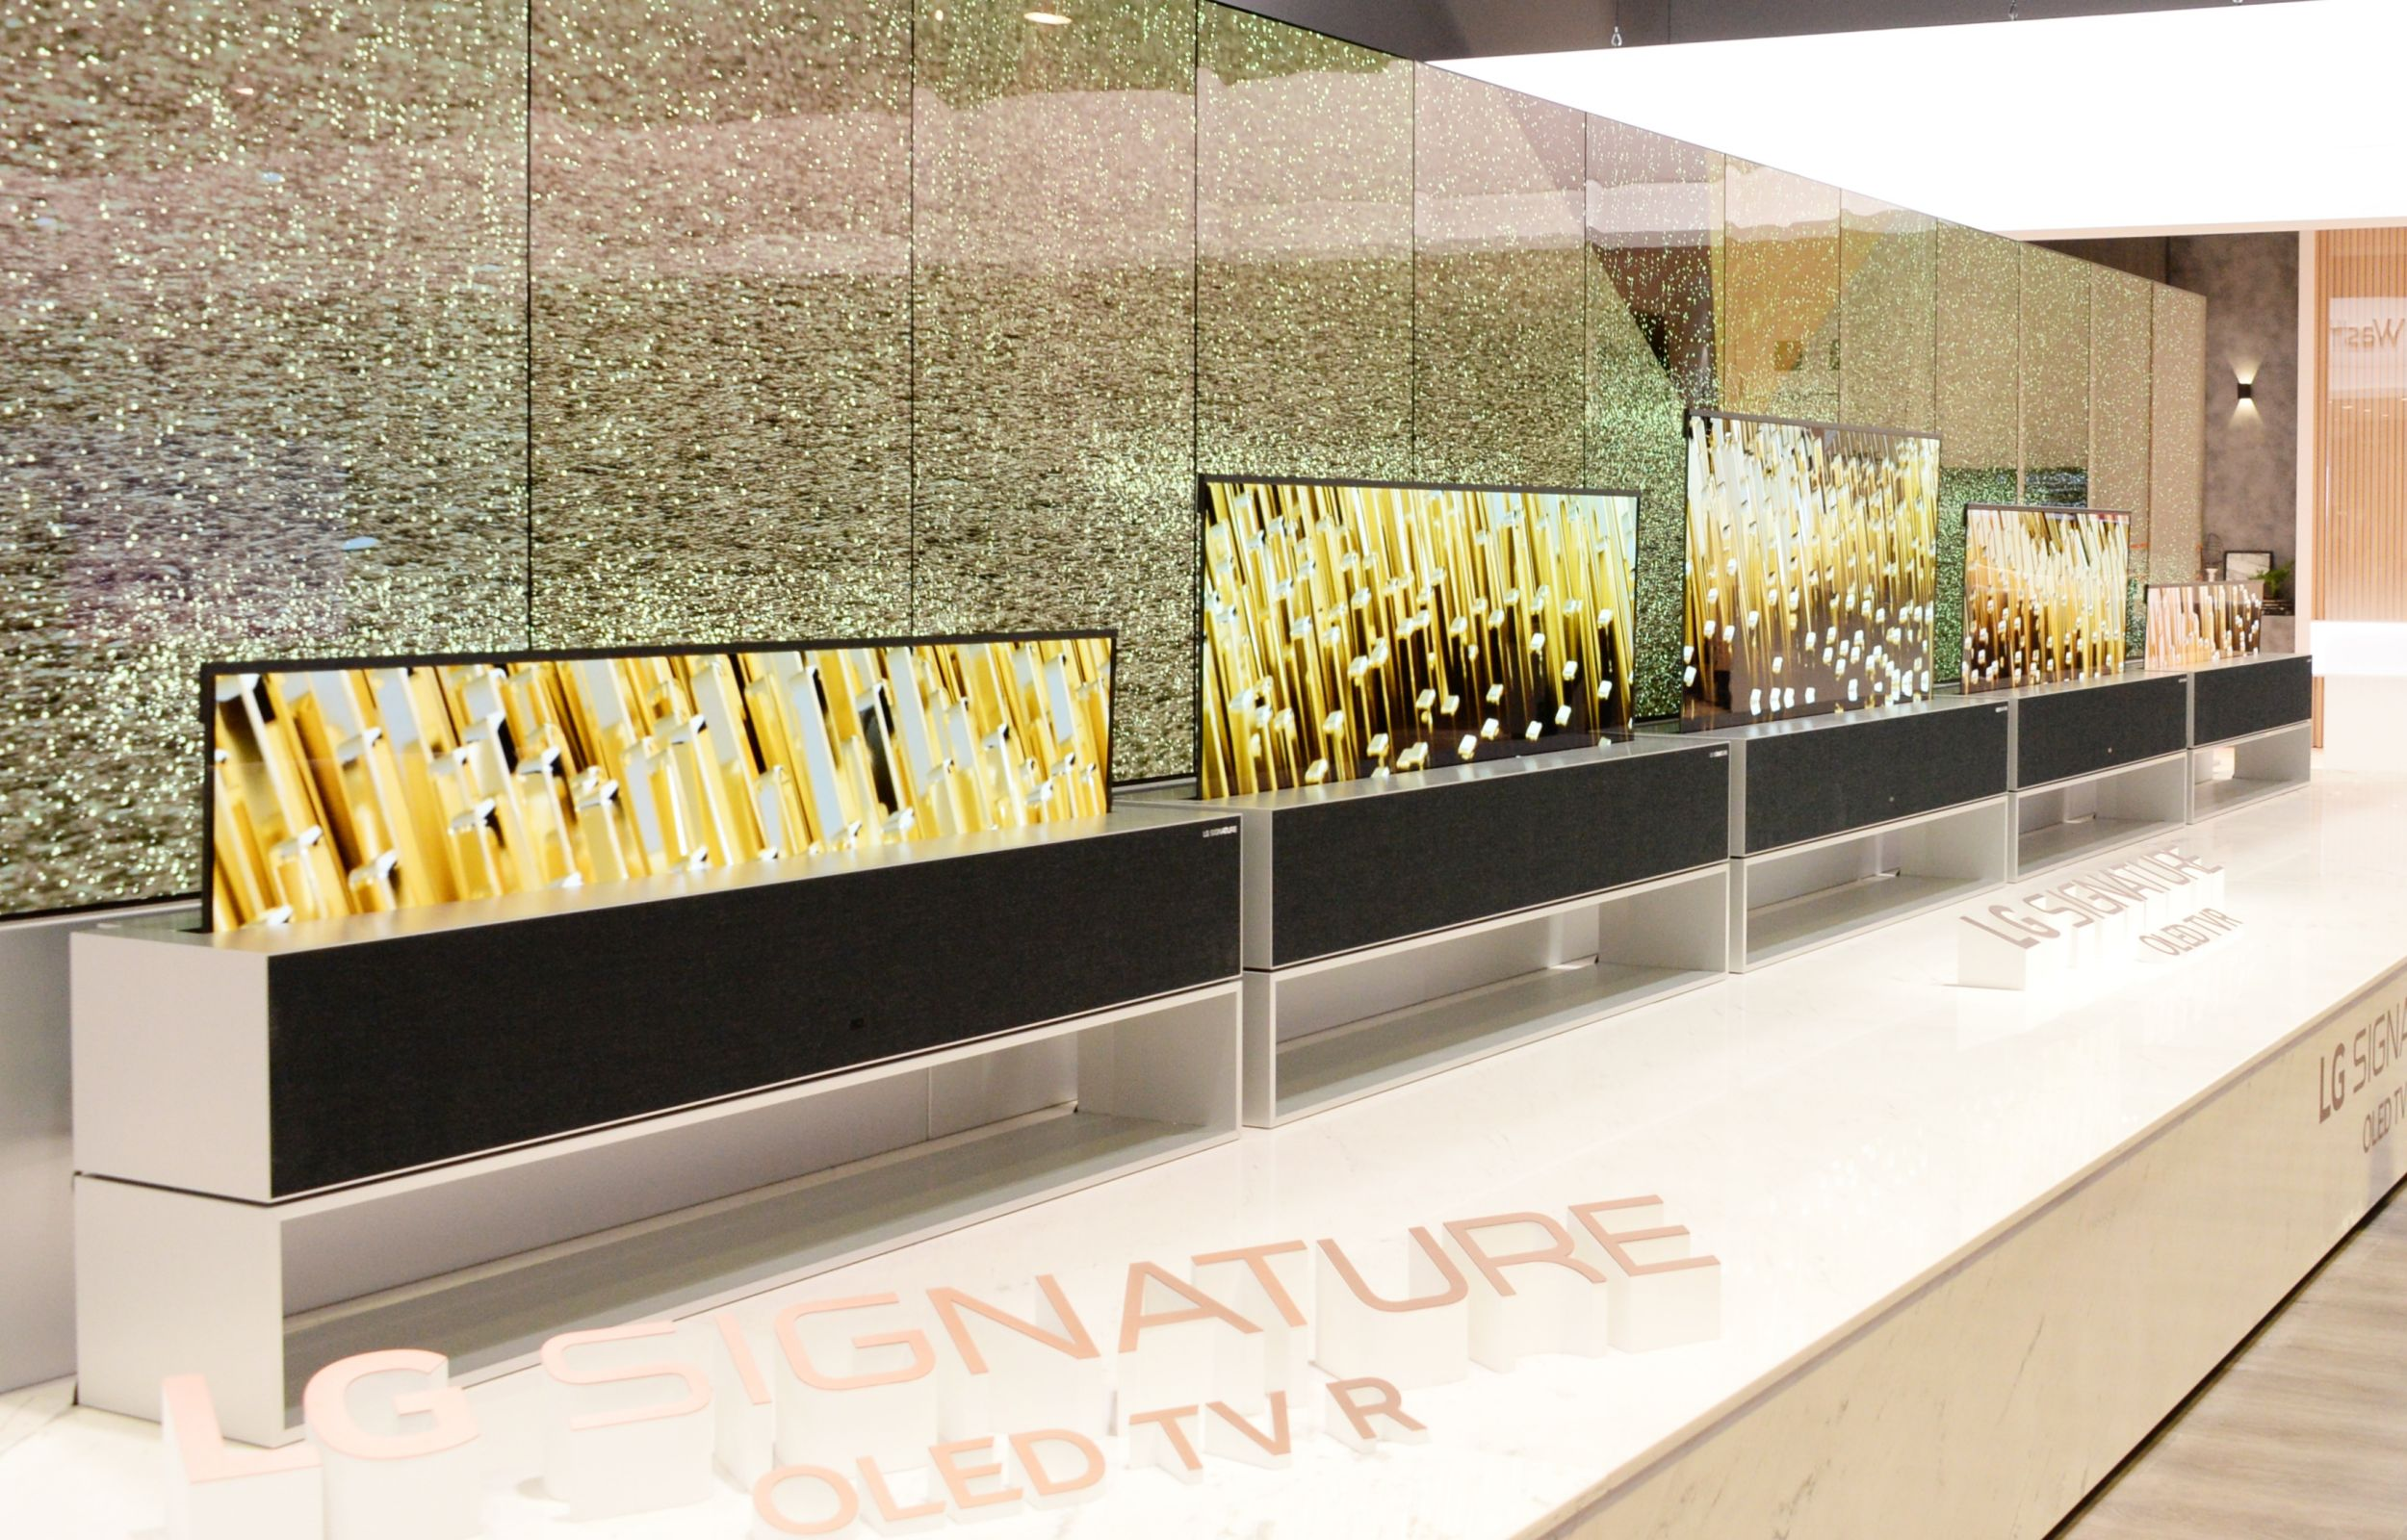 d1763e11298a The LG Signature OLED TV R, the world's first rollable TV is finally going  on sale